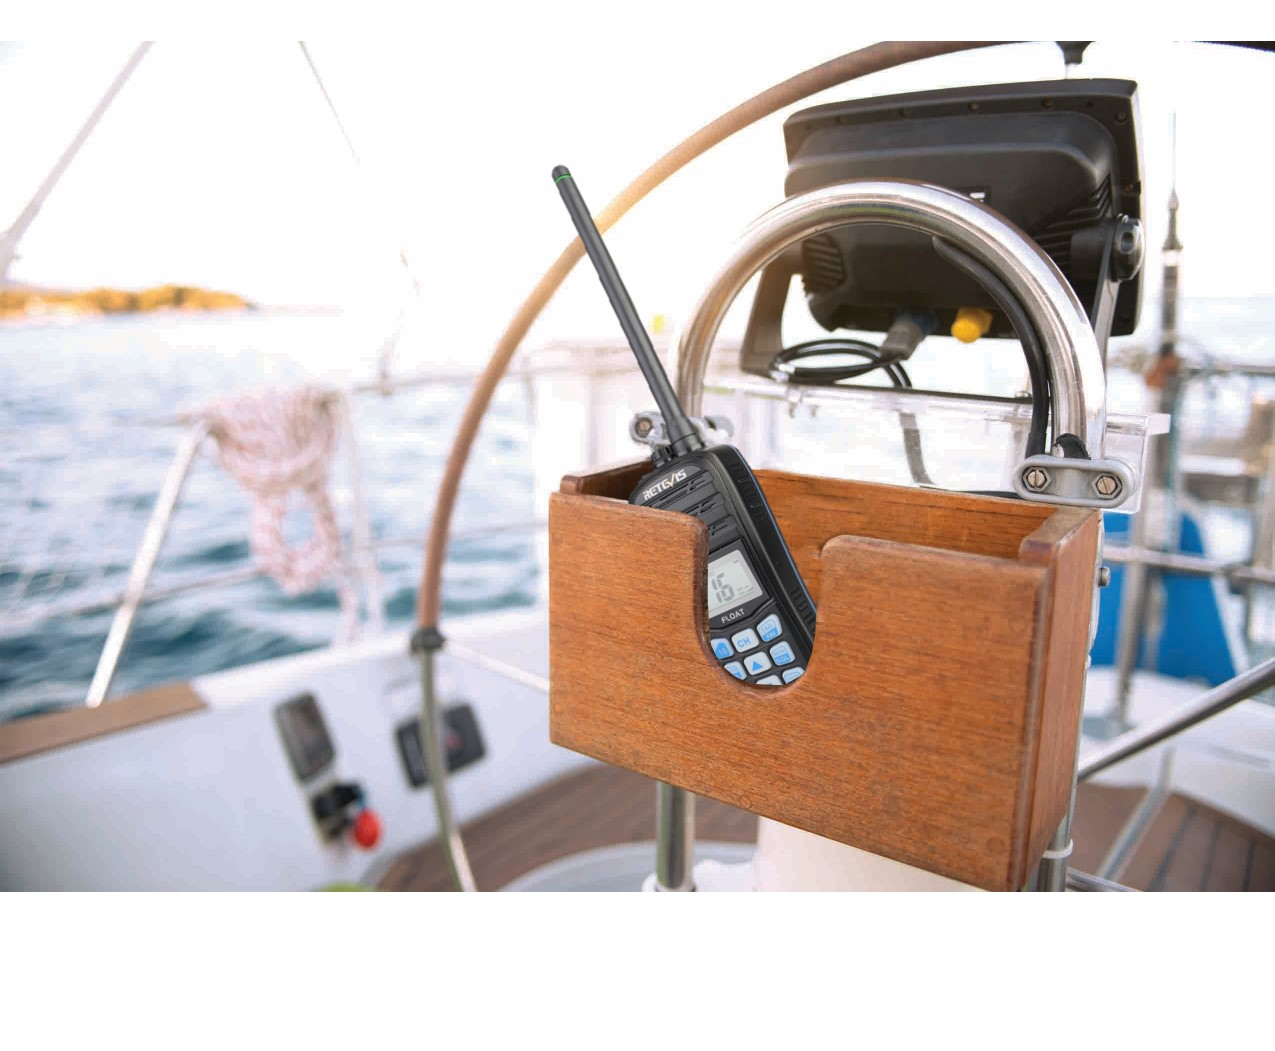 The Importance Of Having Marine VHF Radios On board